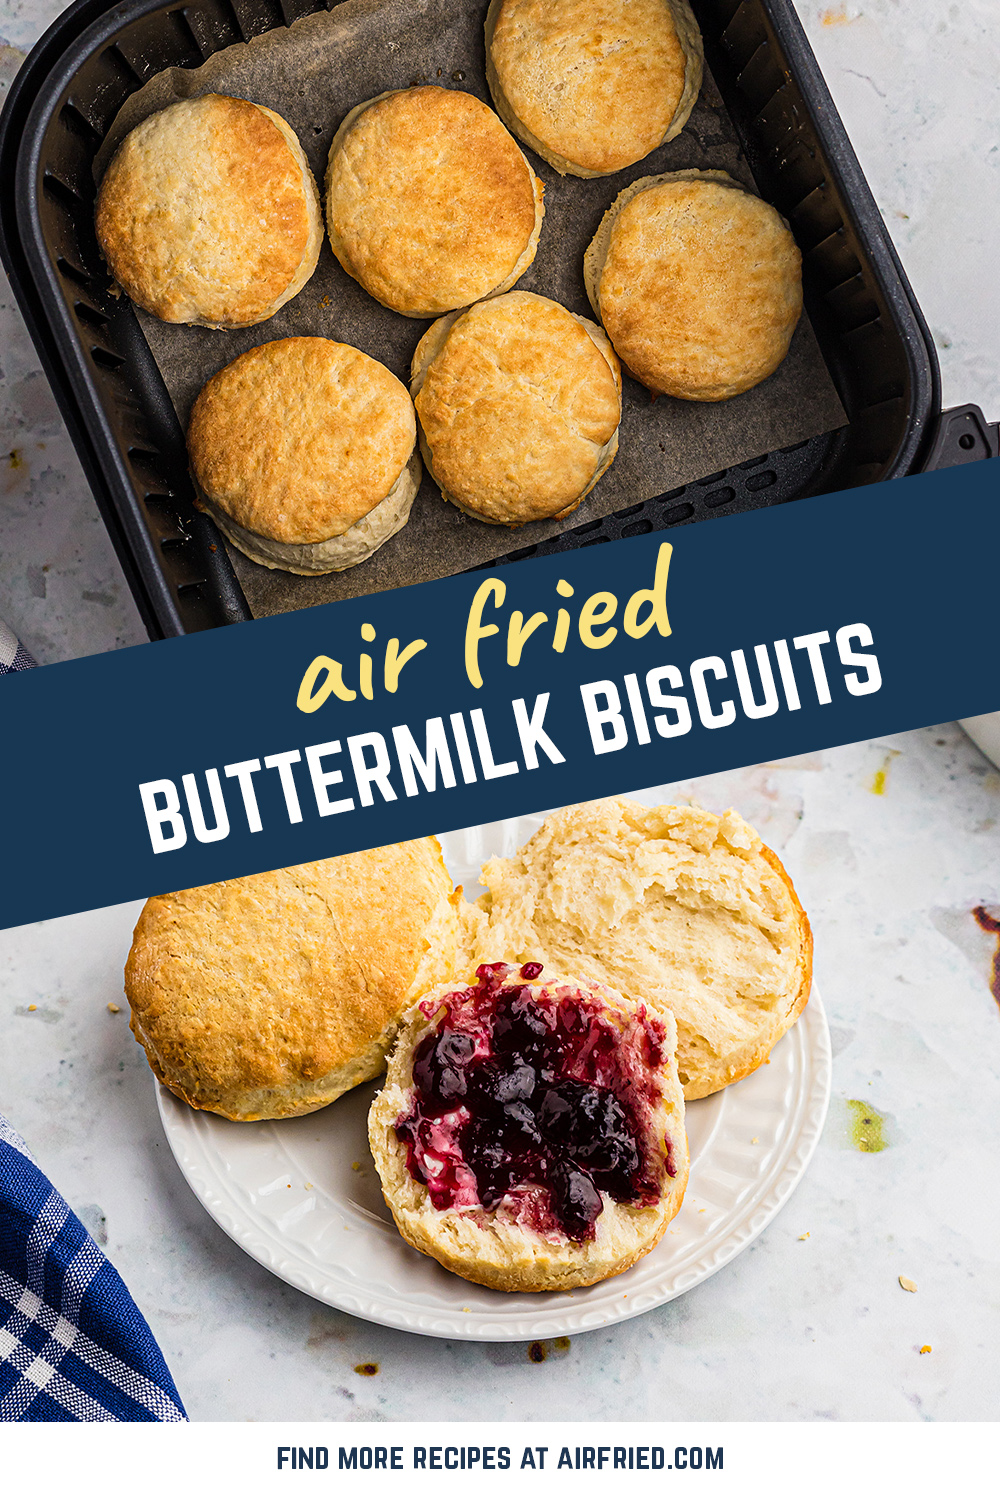 Buttermilk biscuits come out perfectly flaky from the air fryer!  #recipes #airfried #biscuits